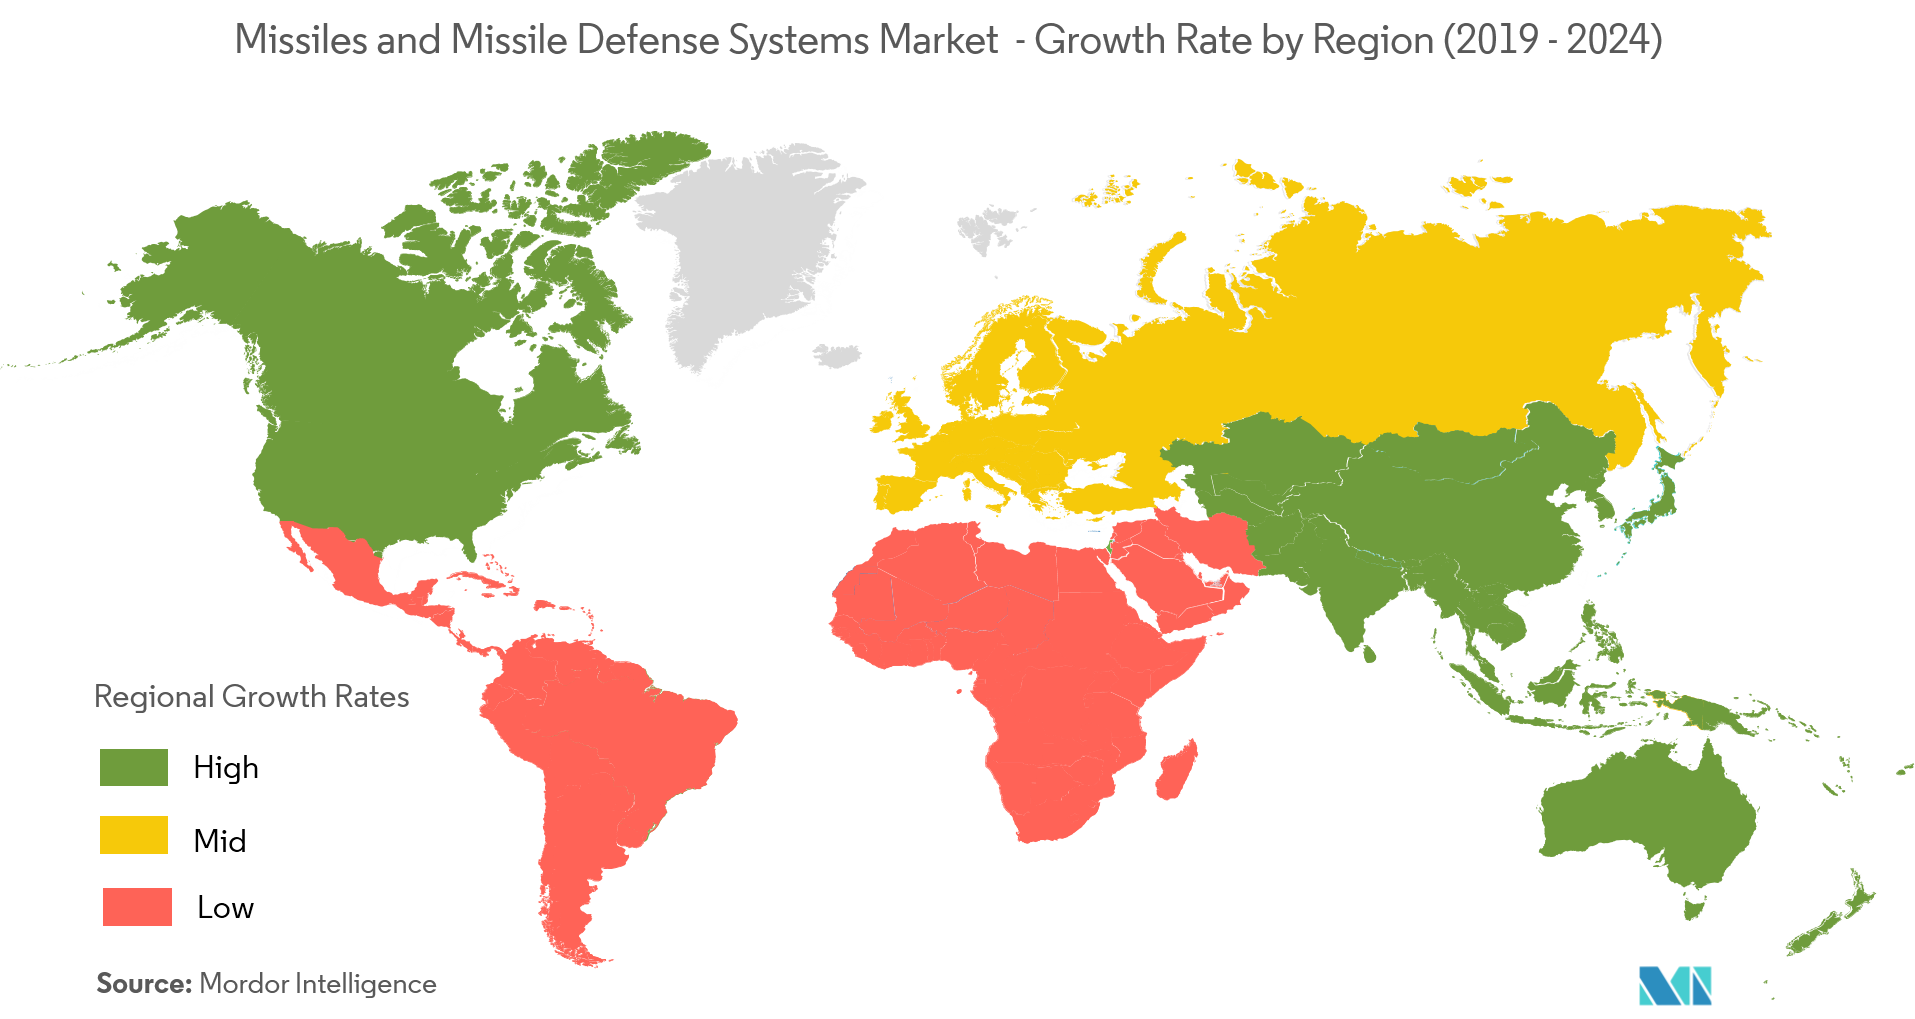 Missiles and Missile Defense Systems Market geography 1